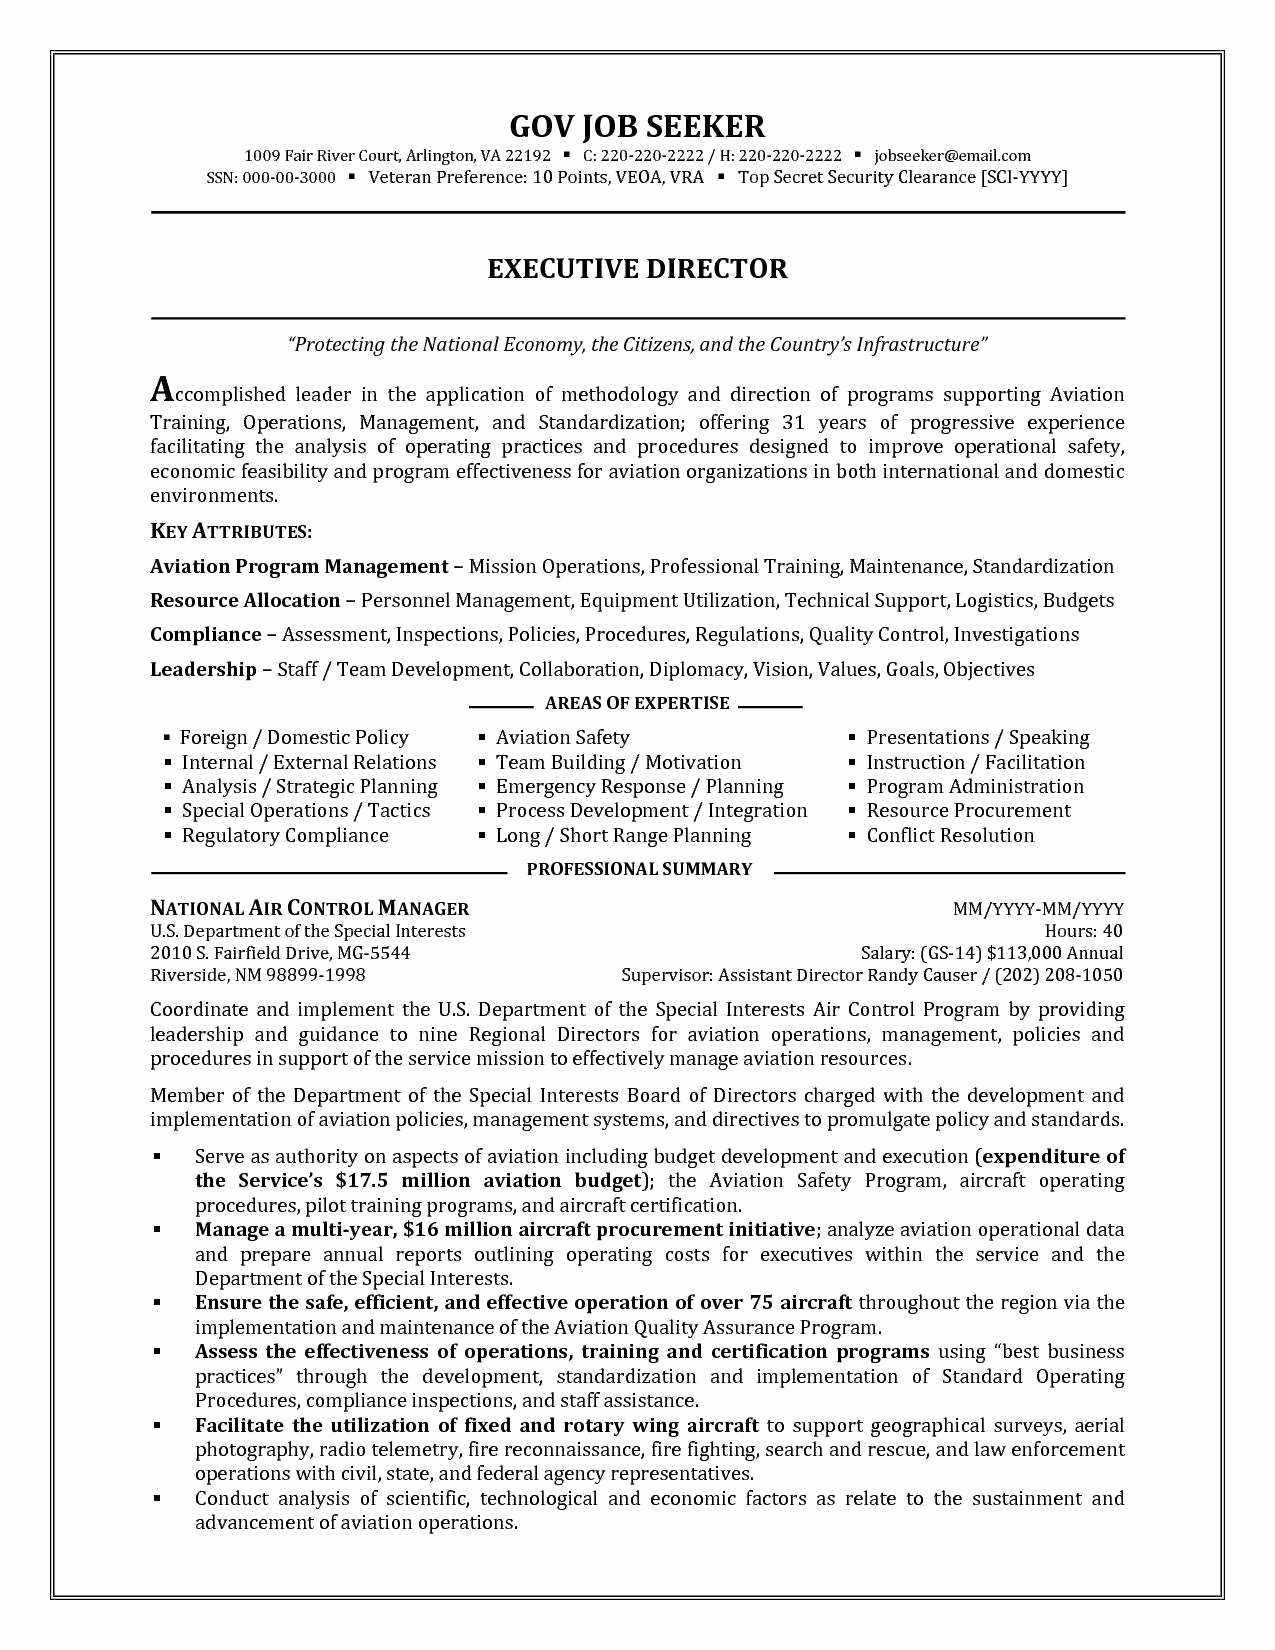 Internal Job Posting Template Elegant 50 Simple Resume for Internal Position Jk O